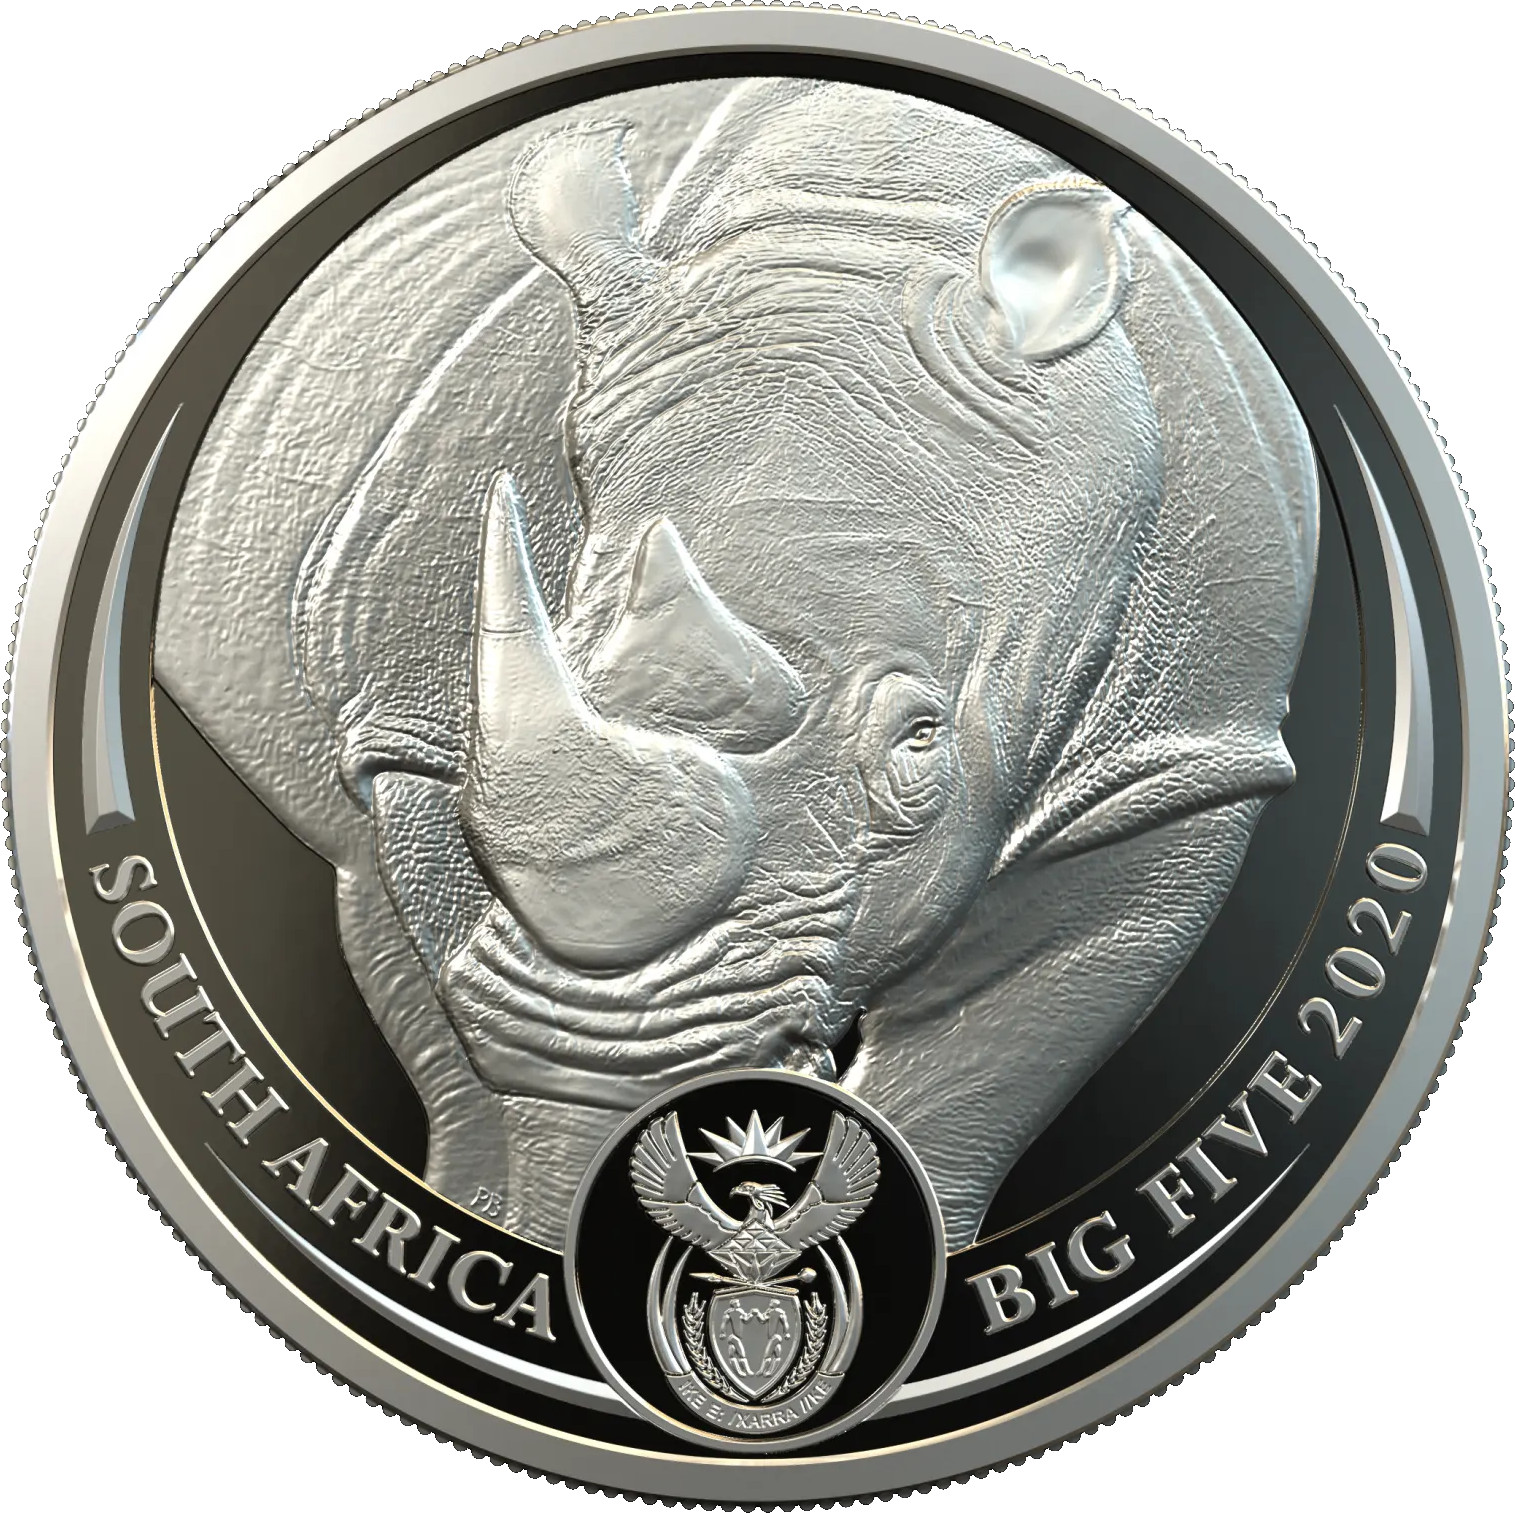 Platinum Ounce 2020 Big Five - Rhino: Photo R20 Big 5 Rhino 1oz Platinum Proof